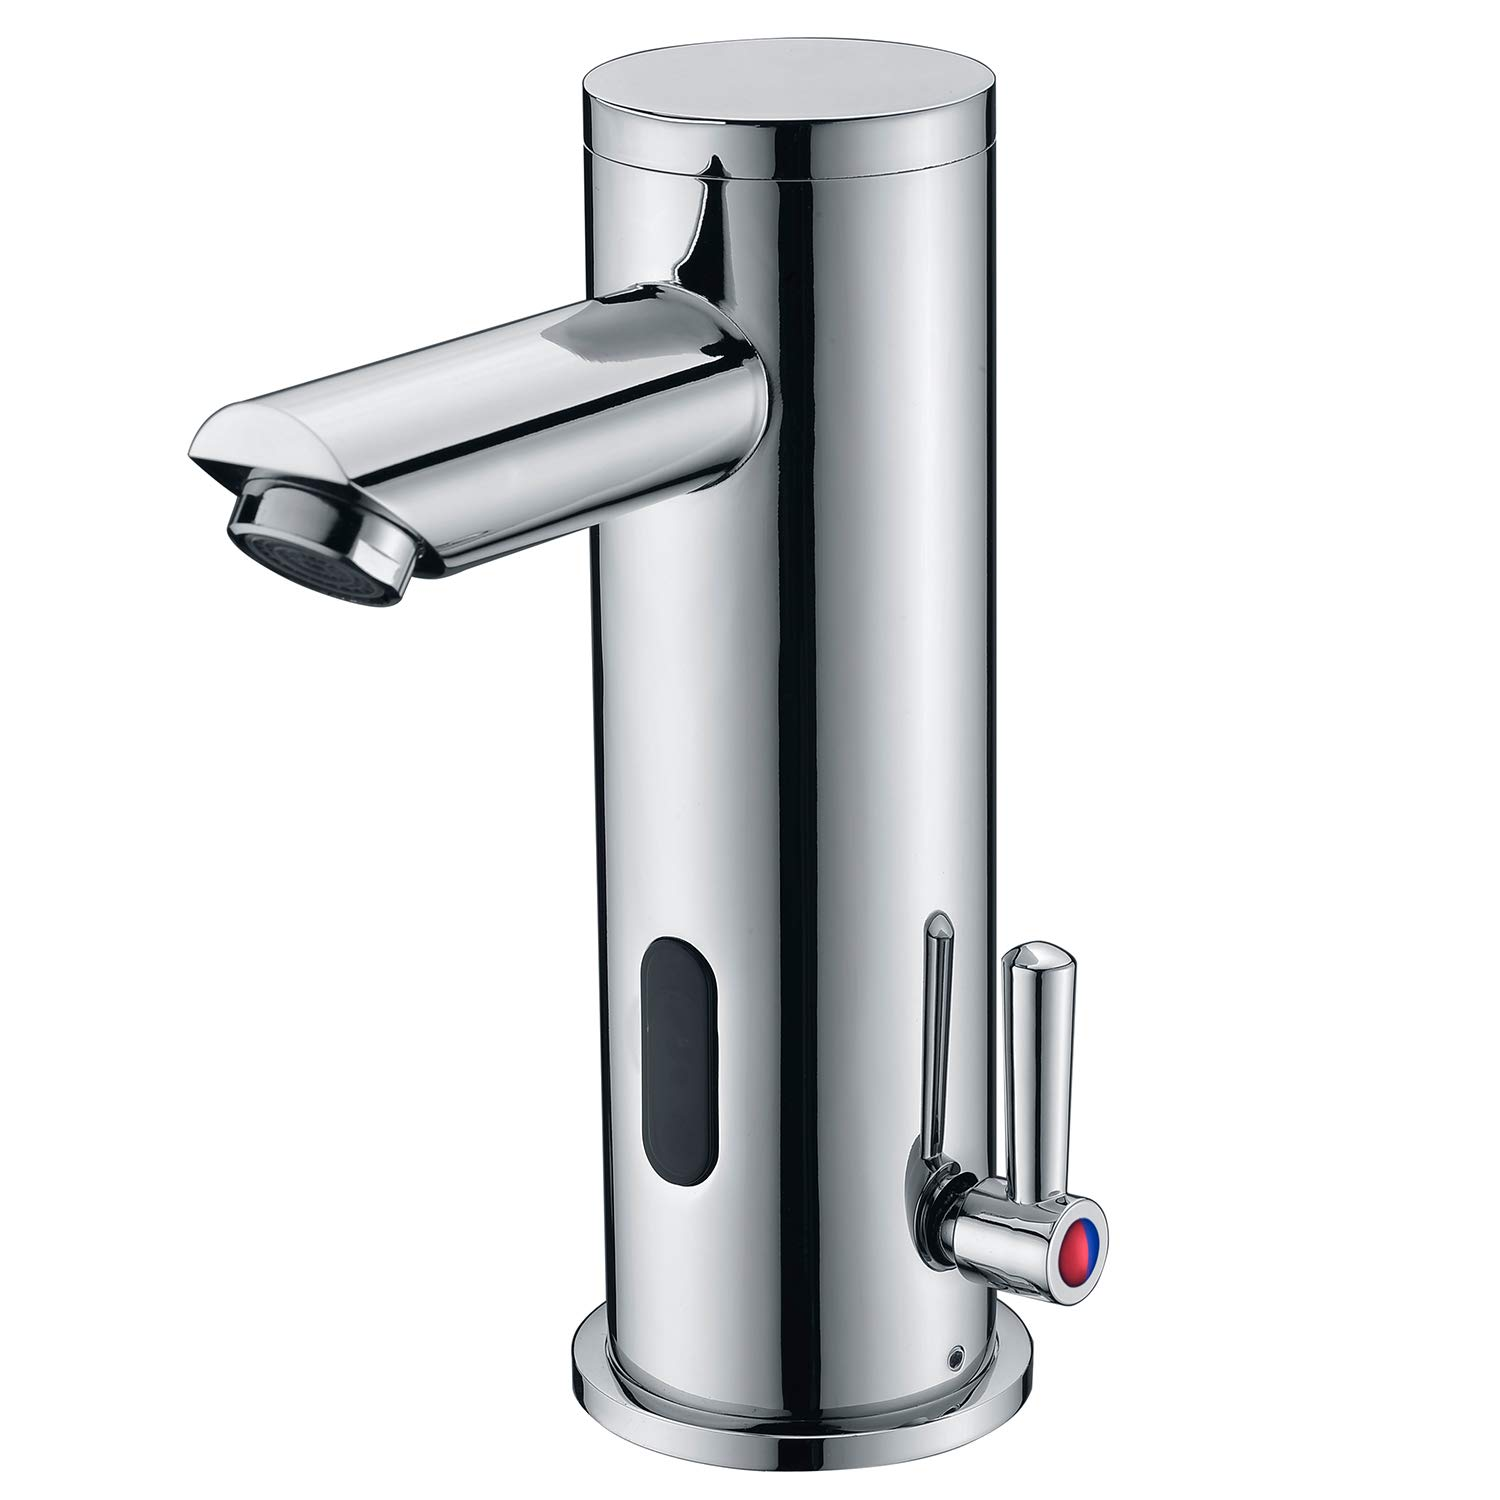 Fyeer Automatic Sensor Faucet, Electronic Touchless Bathroom Faucet,Motion Activated Hands-Free Vessel Sink Tap, Single Handle Easy Installation,Chrome Finish by Fyeer